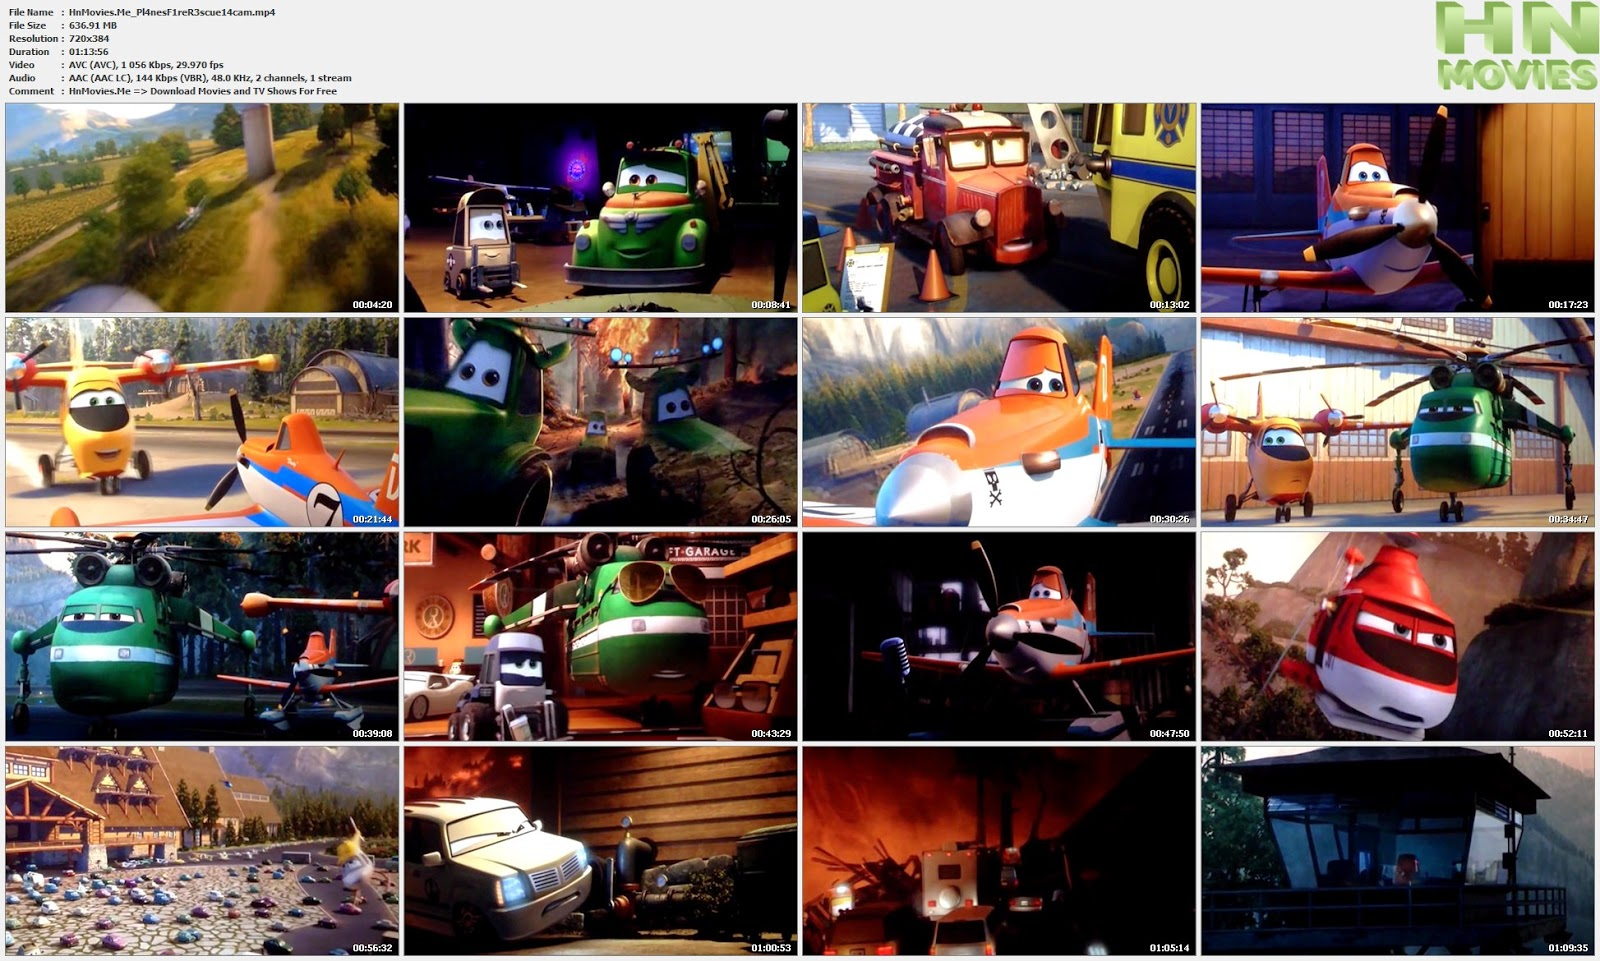 movie screenshot of Planes: Fire & Rescue 2014 fdmovie.com